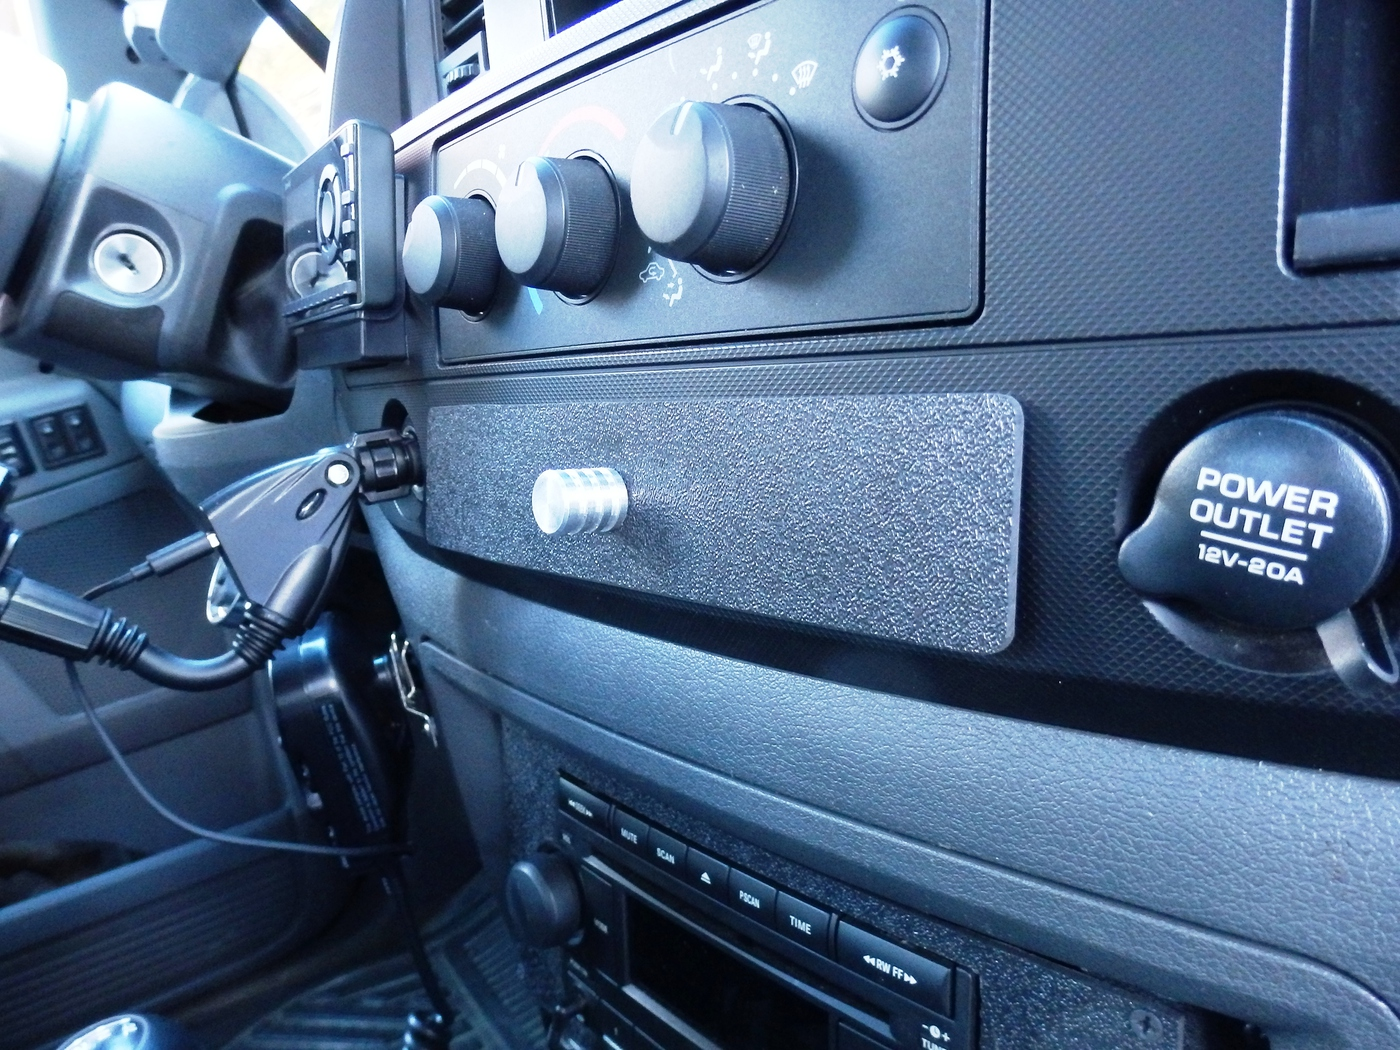 Dodge Ram 2500 Dash Modification Rvb Precision 2007 Radio Upgrade When Installing The Cb I Realized That Had A Small Space Under Could Leave Swr Match Box